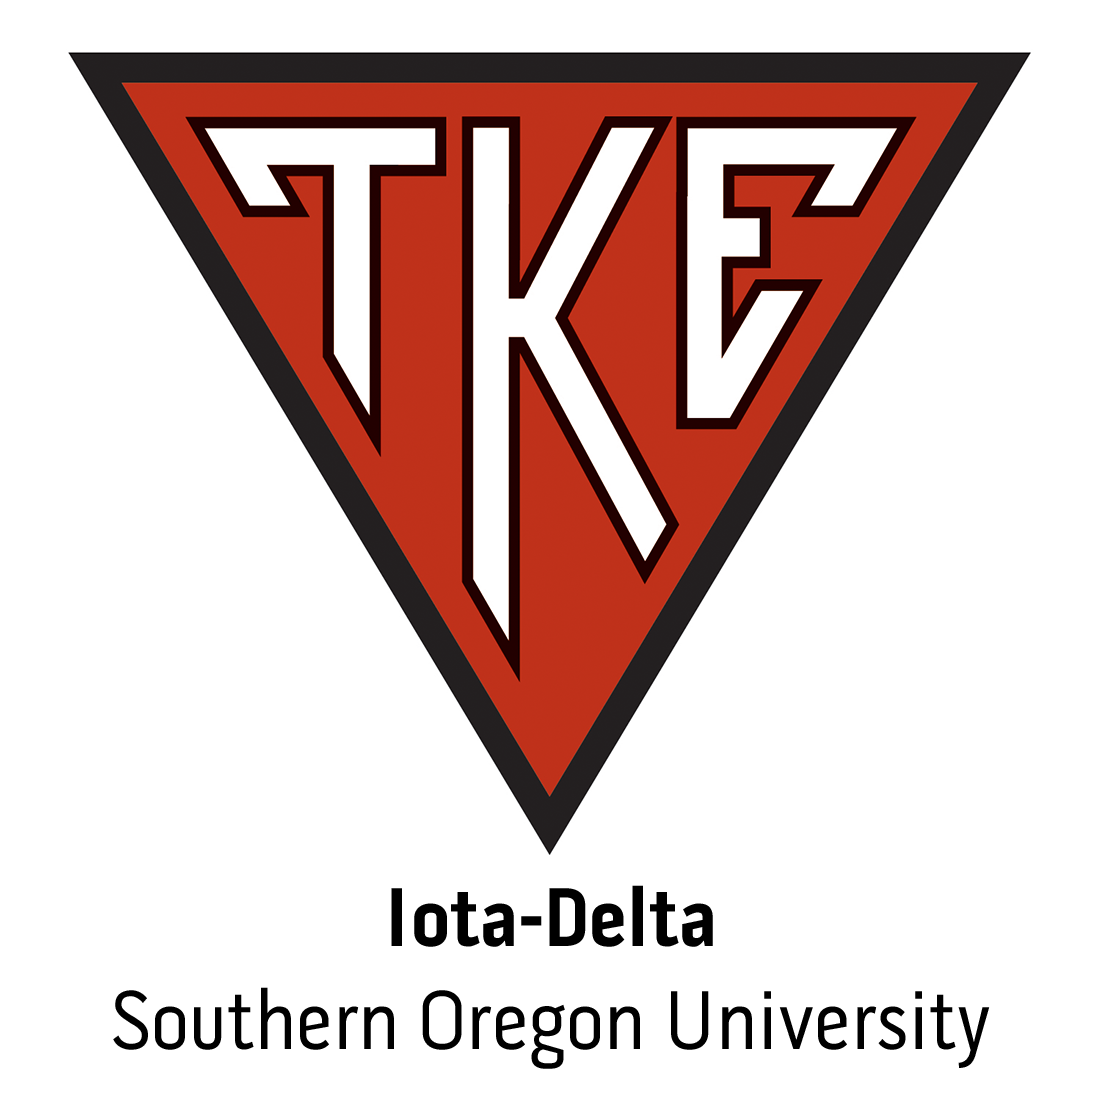 Iota-Delta Colony at Southern Oregon University